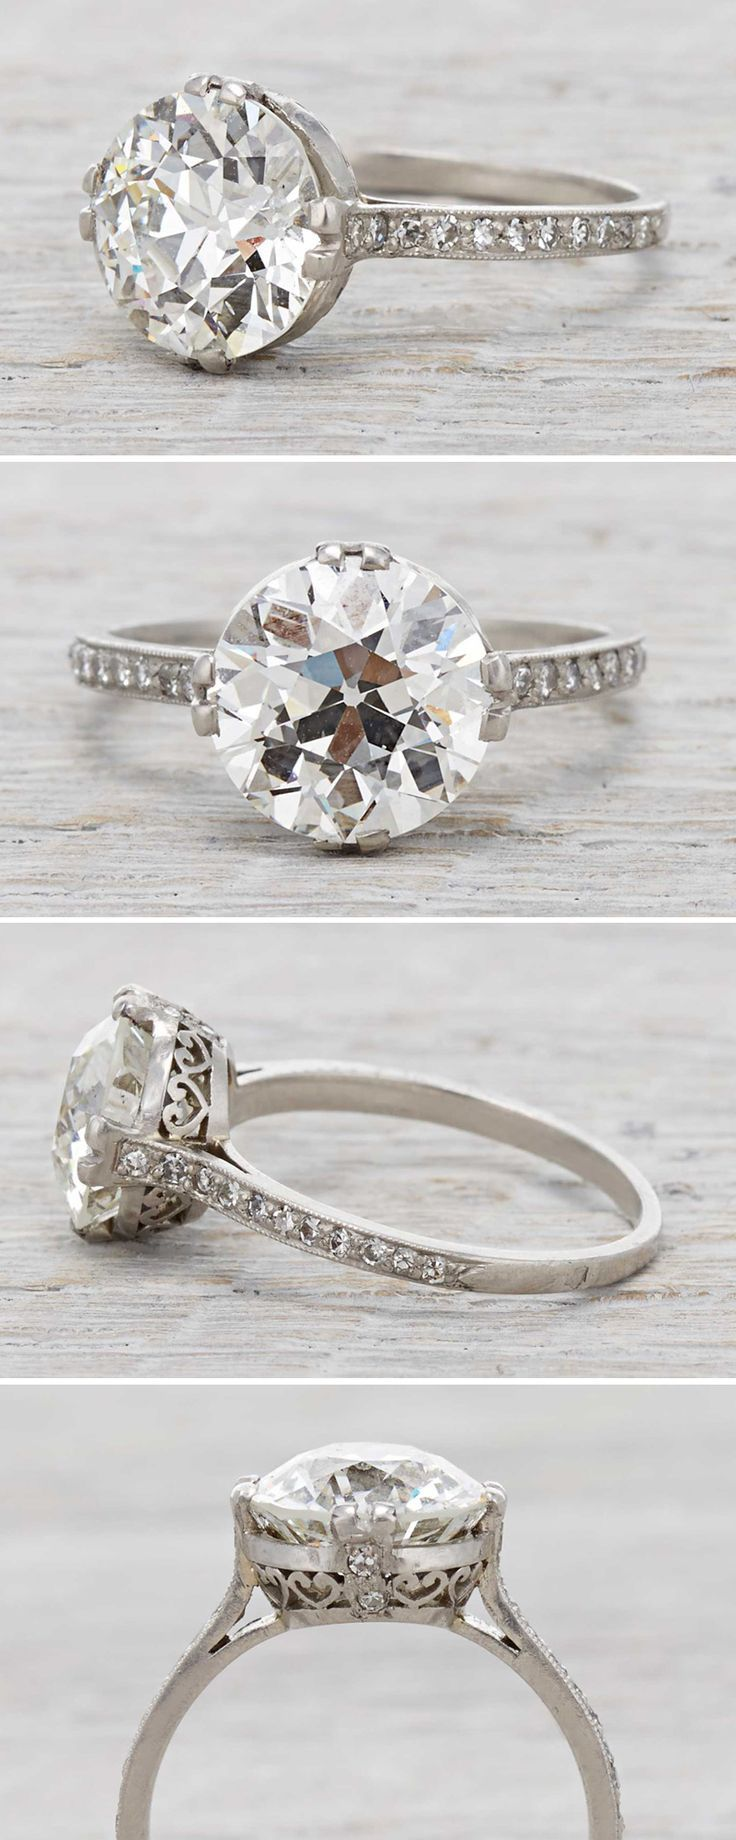 Art Deco Vintage Engagement Ring With A 3 77 Carat Diamond Circa 1920 Art Deco Engagement Ring Art Deco Engagement Best Engagement Rings